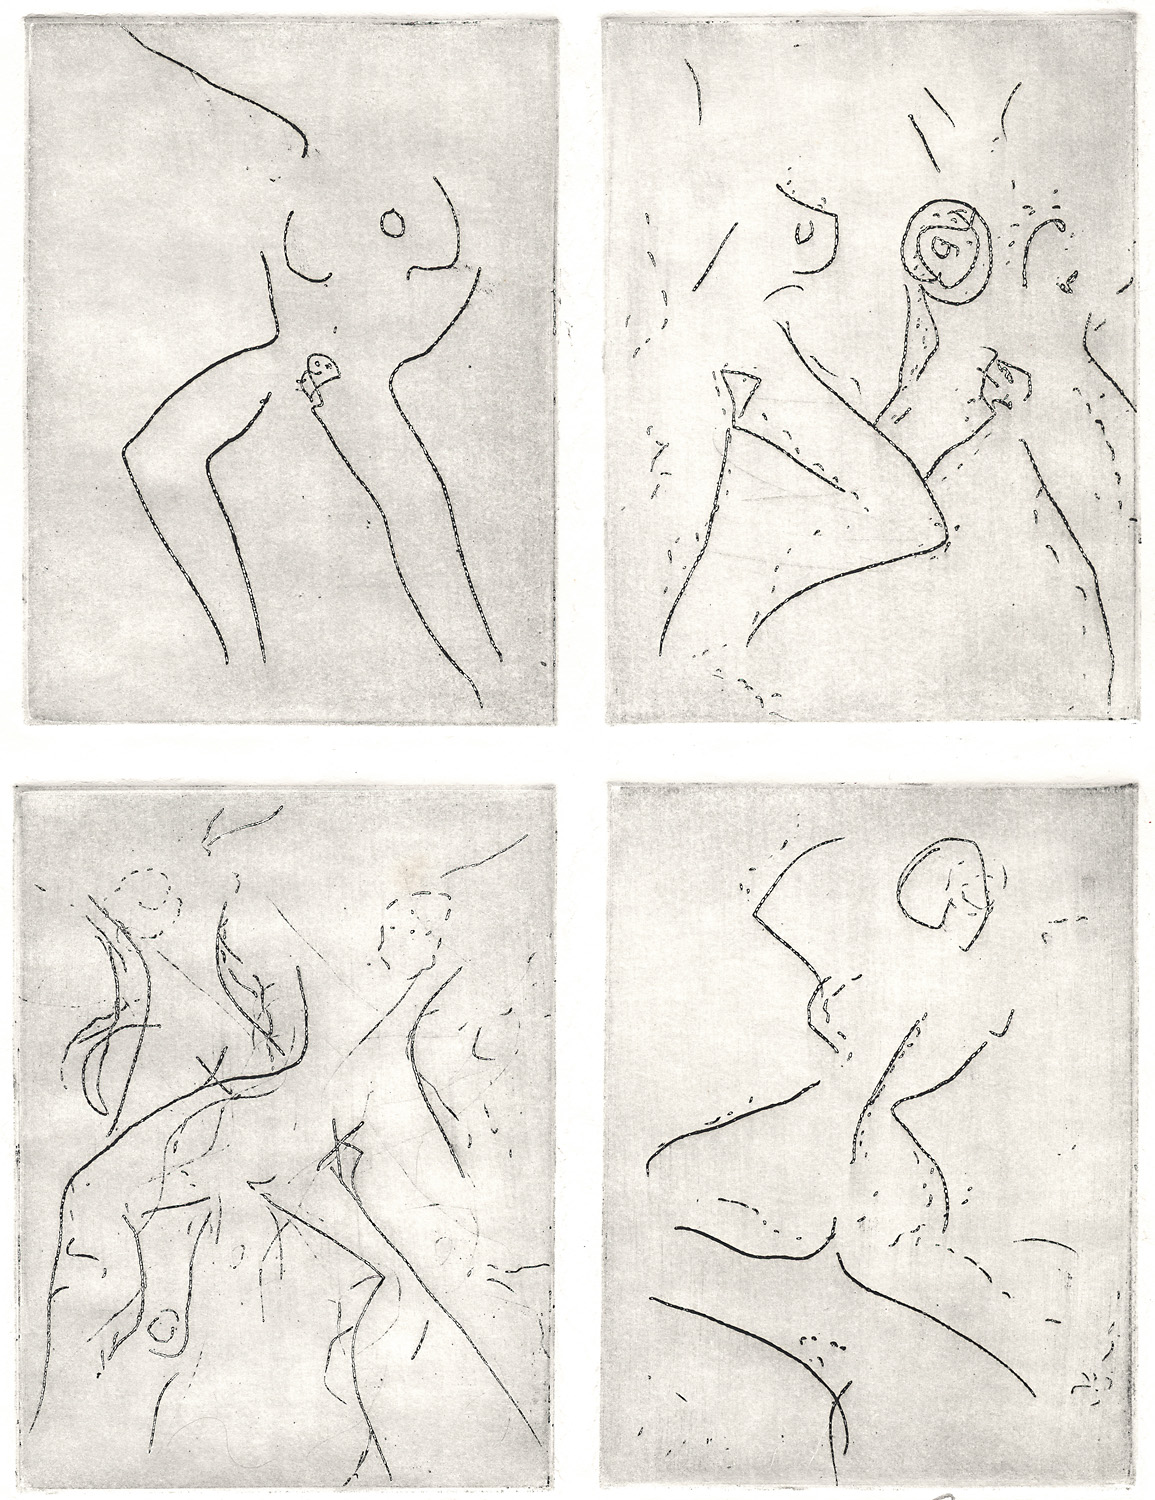 Indira-Cesarine-Portraits-Intaglio-Ink-on-Rag-Paper-The-Sappho-Series-1992.jpg